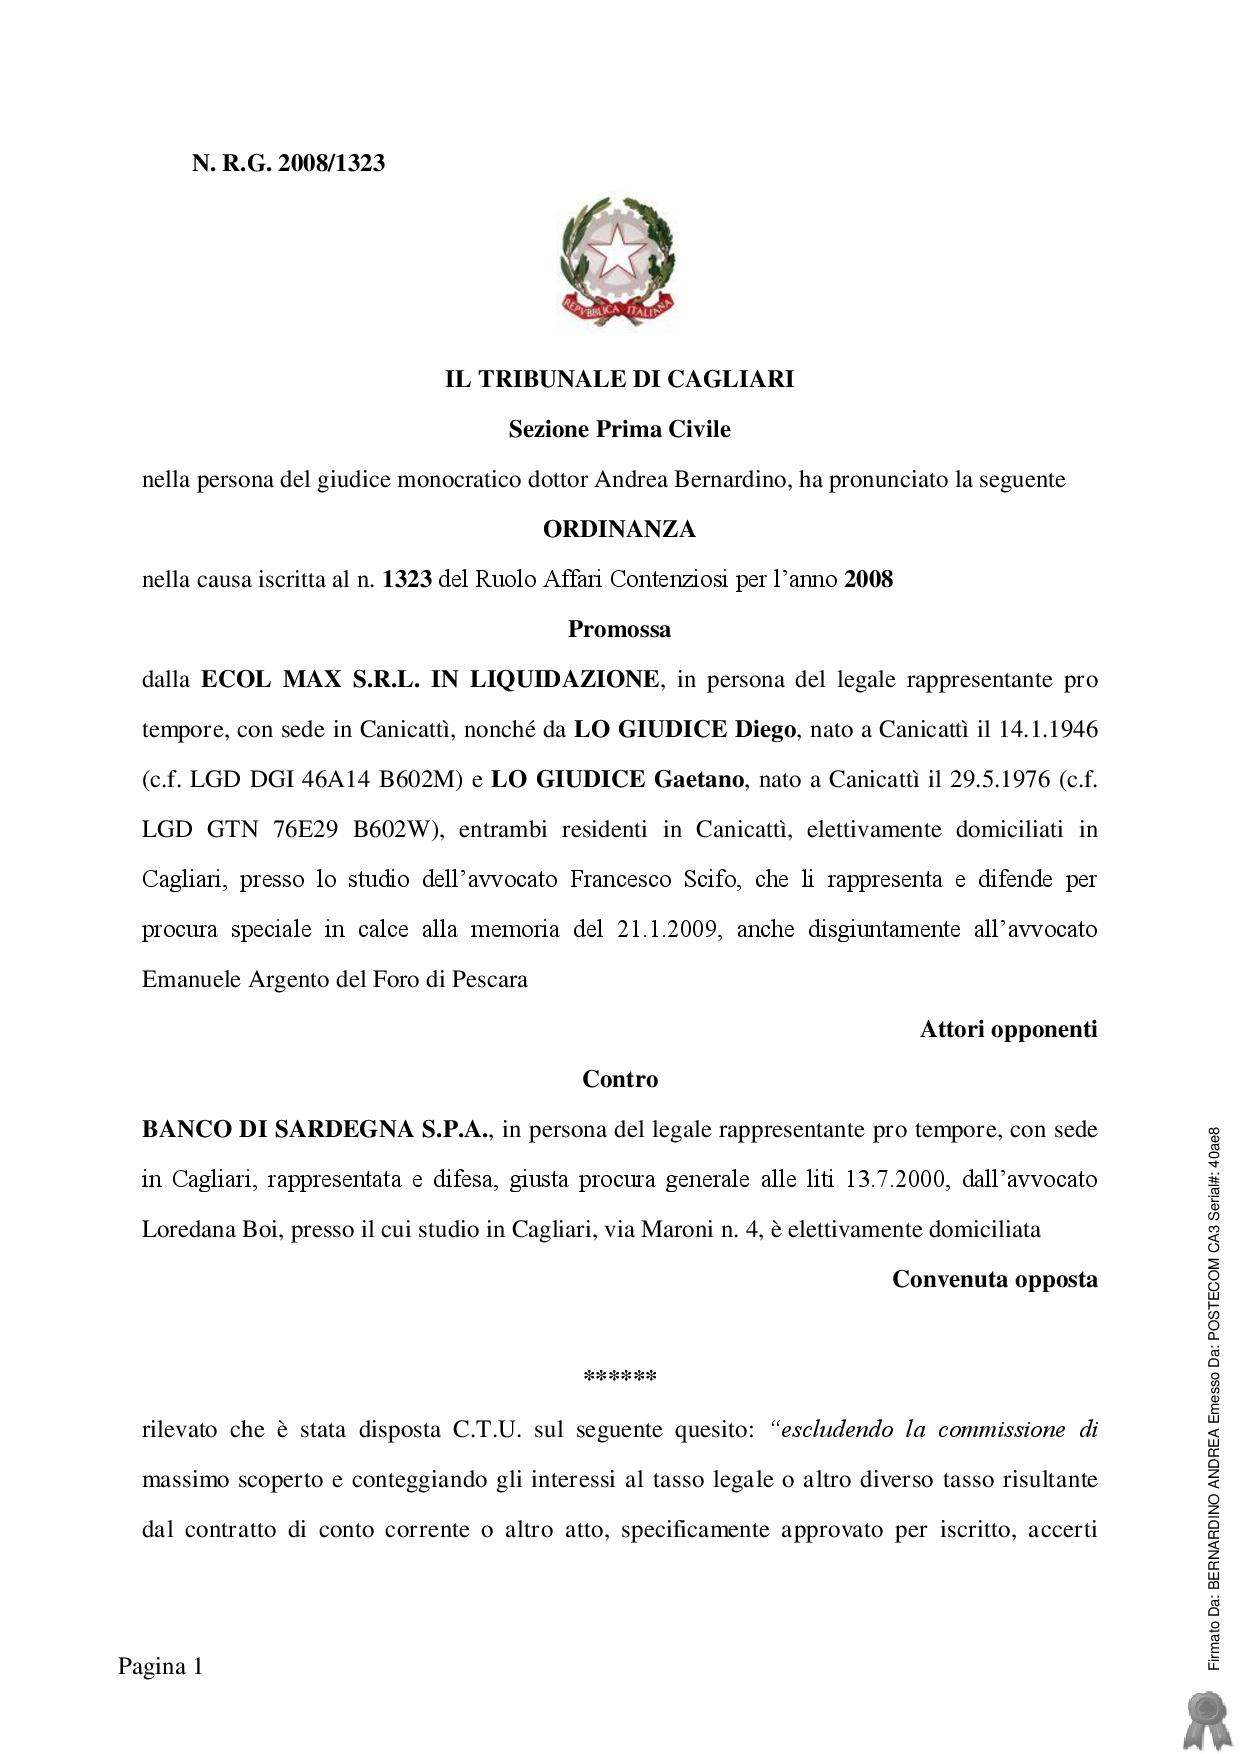 www.delittodiusura.it_website_data_ordinanze_tribunale di cagliari ordinanza del 12-11-2014-page-001